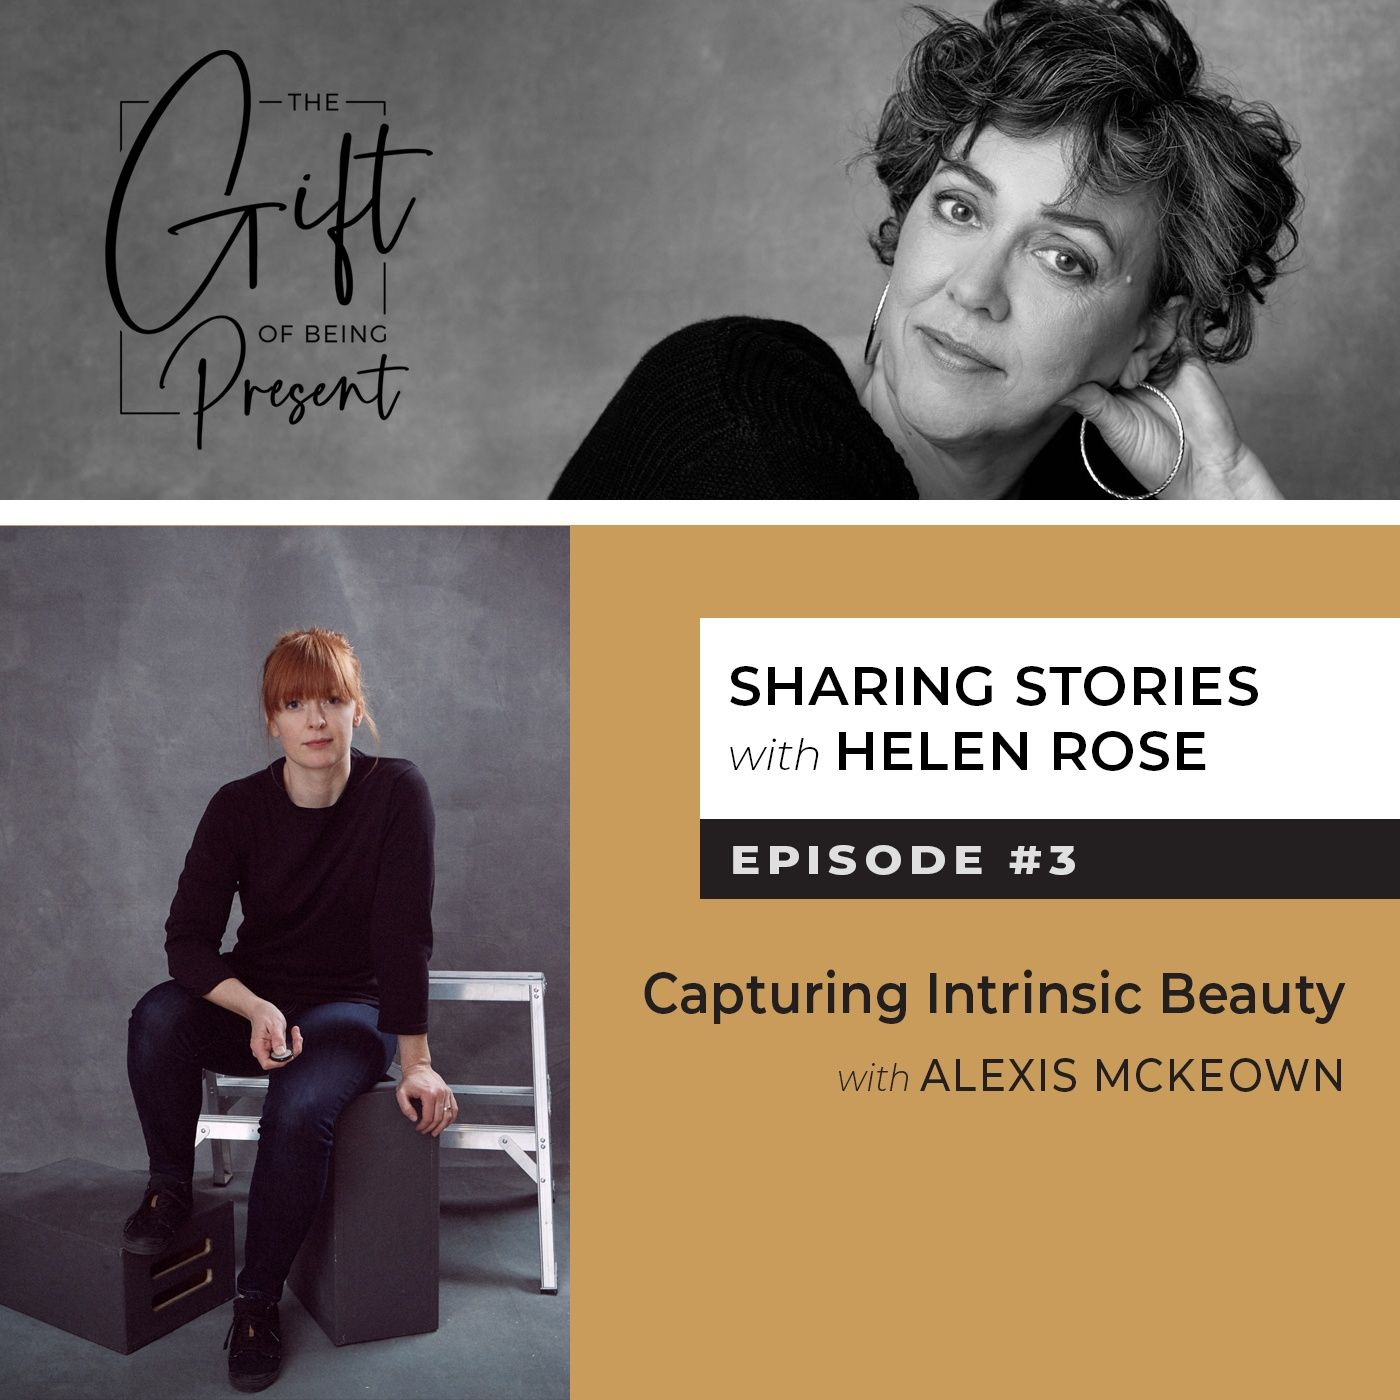 Capturing Intrinsic Beauty with Alexis McKeown